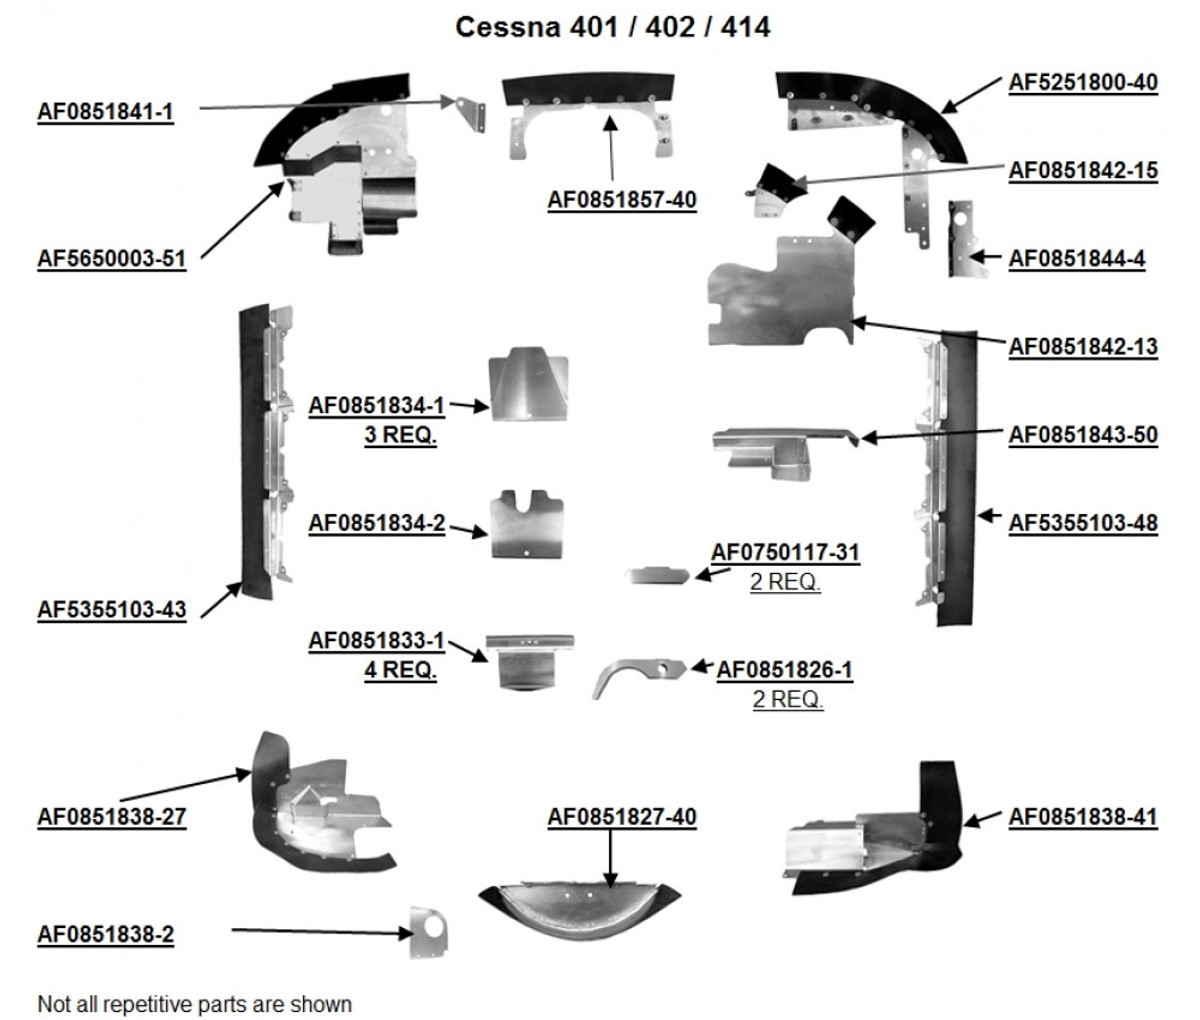 Cessna 401, 402 and 414 Engine Baffles from Knots 2U